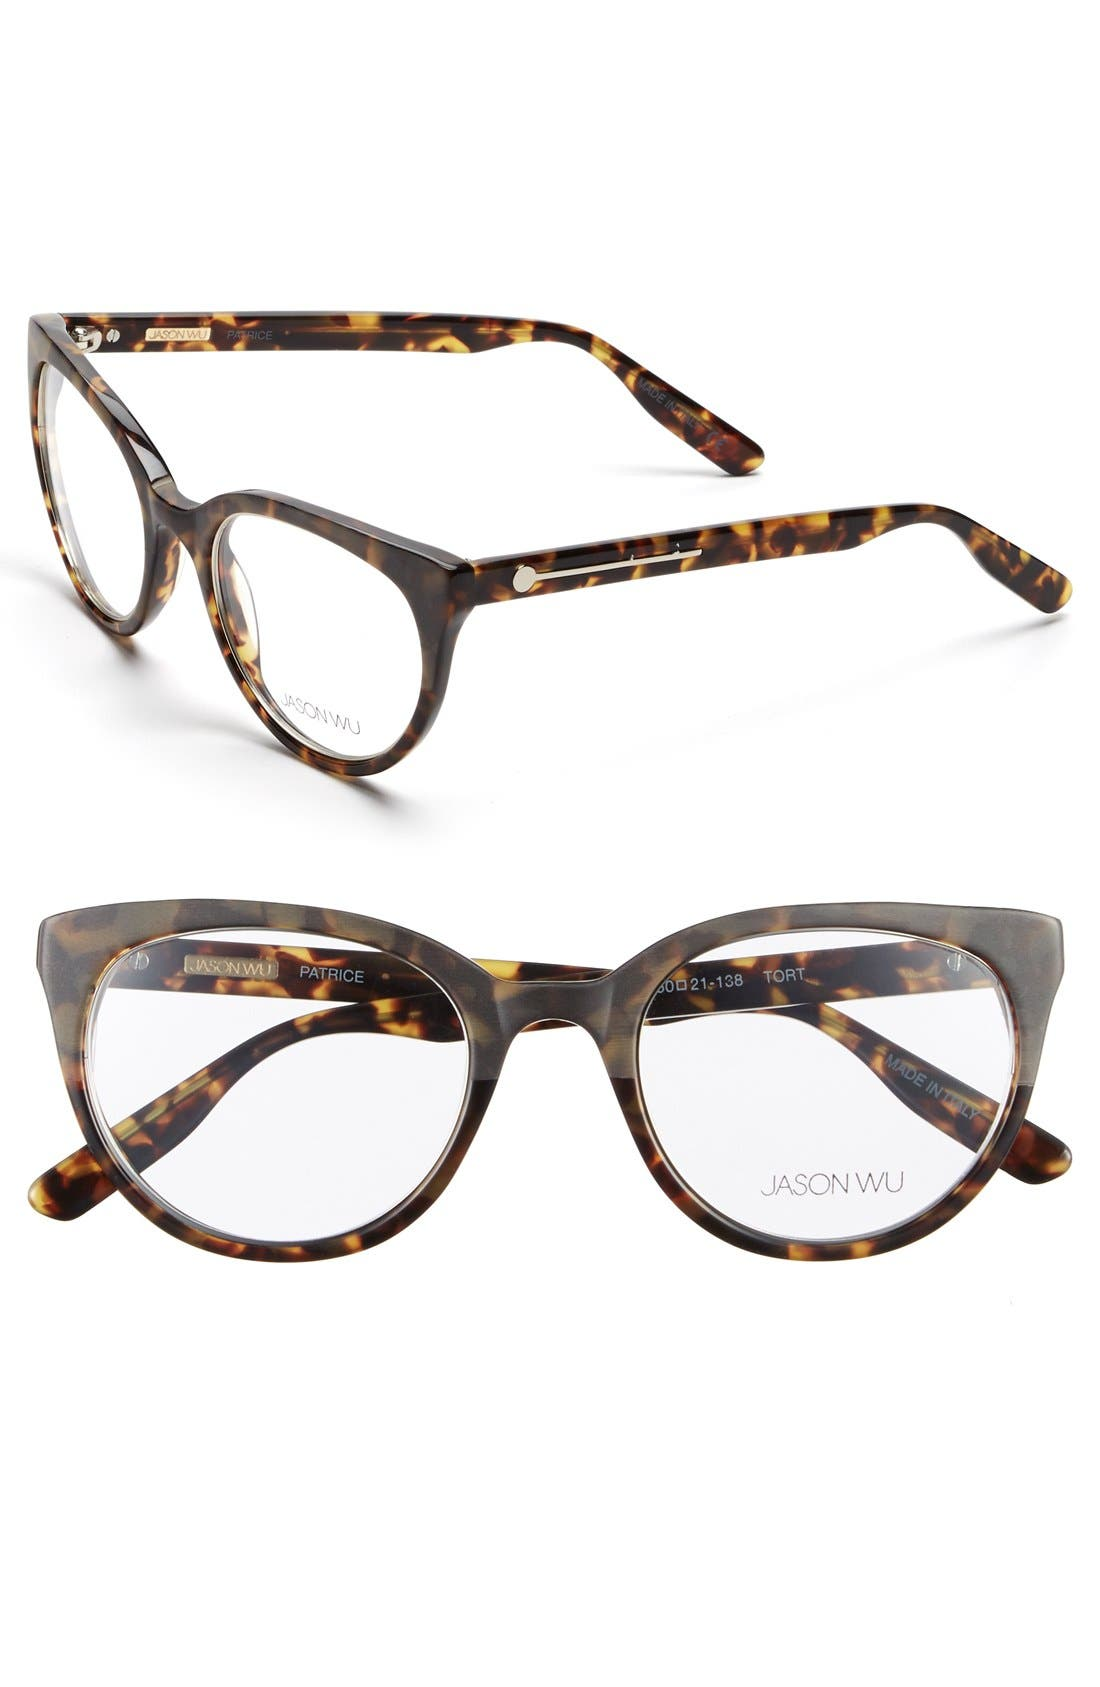 Alternate Image 1 Selected - Jason Wu 'Patrice' 50mm Optical Glasses